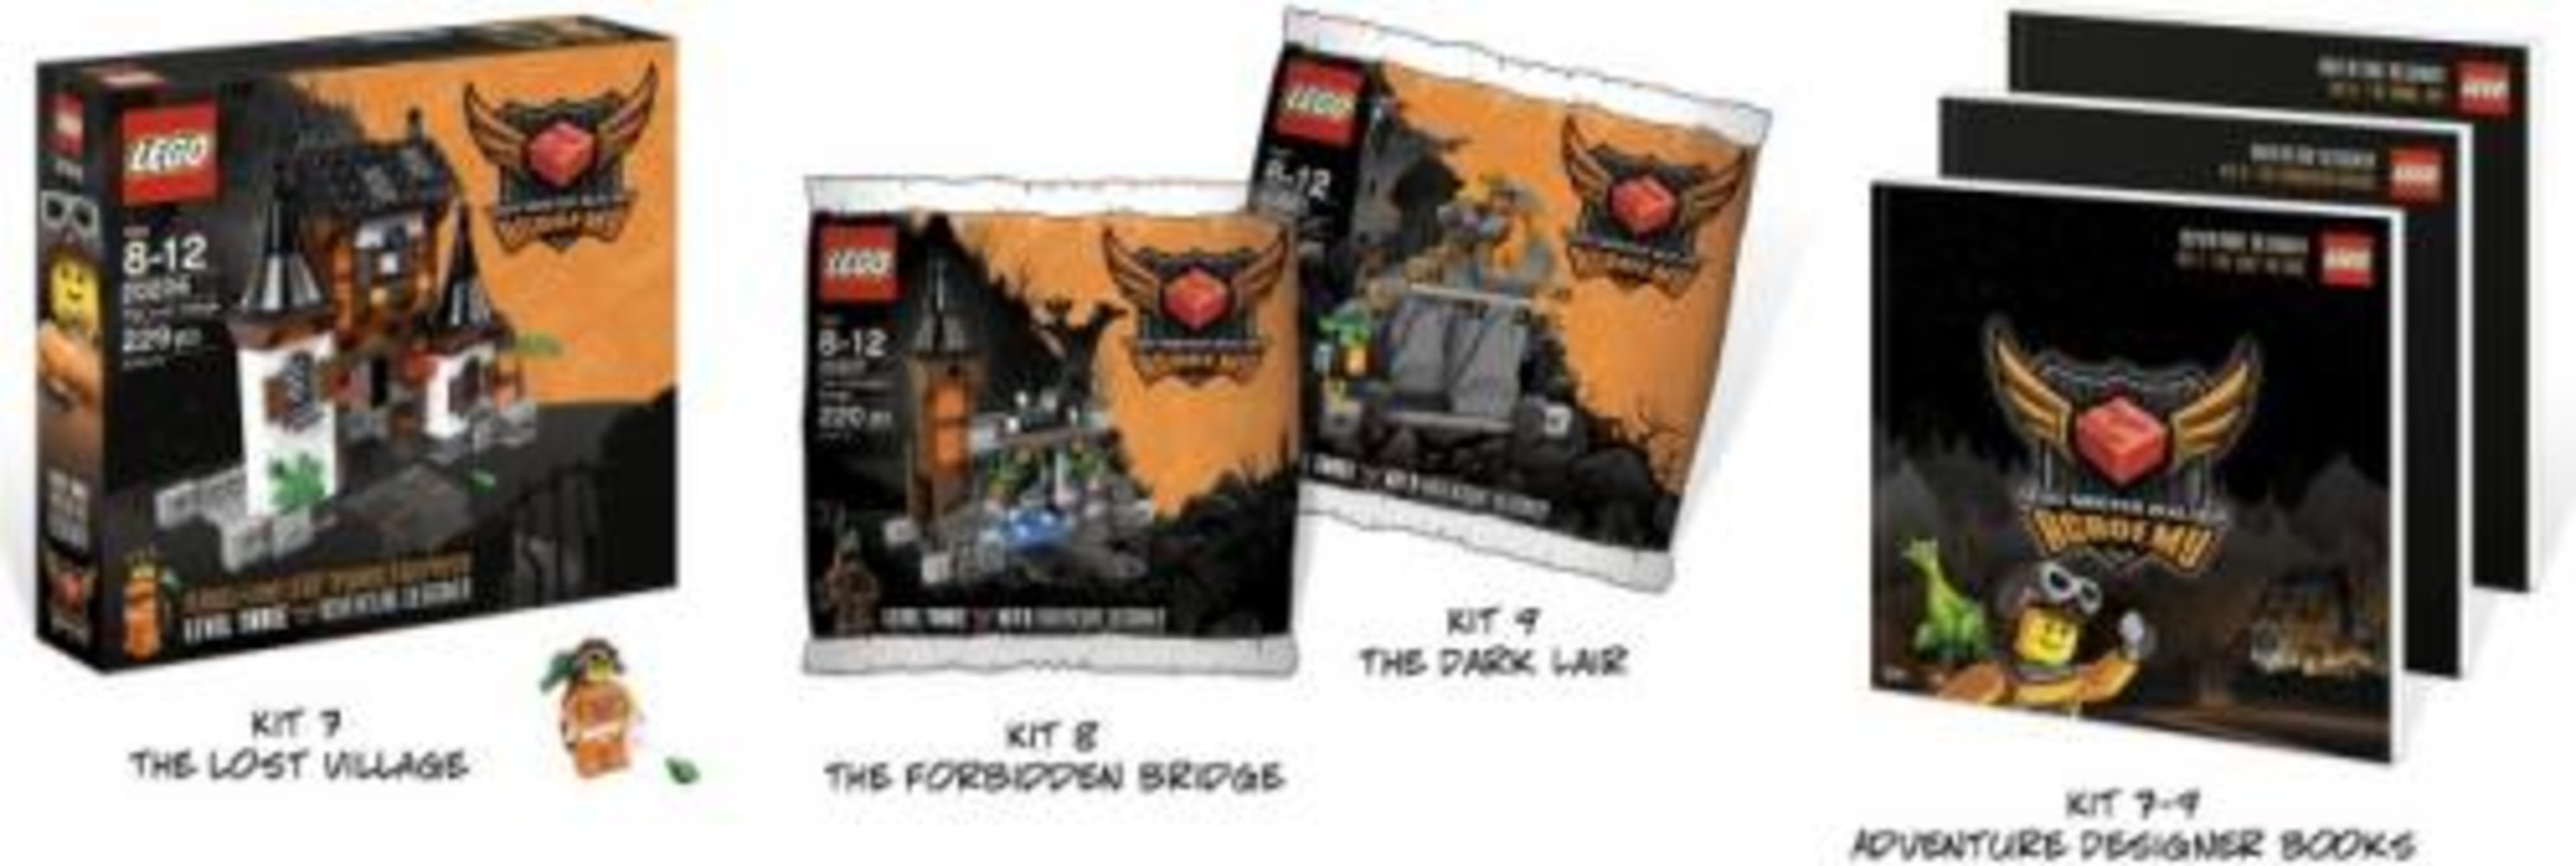 Master Builder Academy: Kits 7-9 Subscription